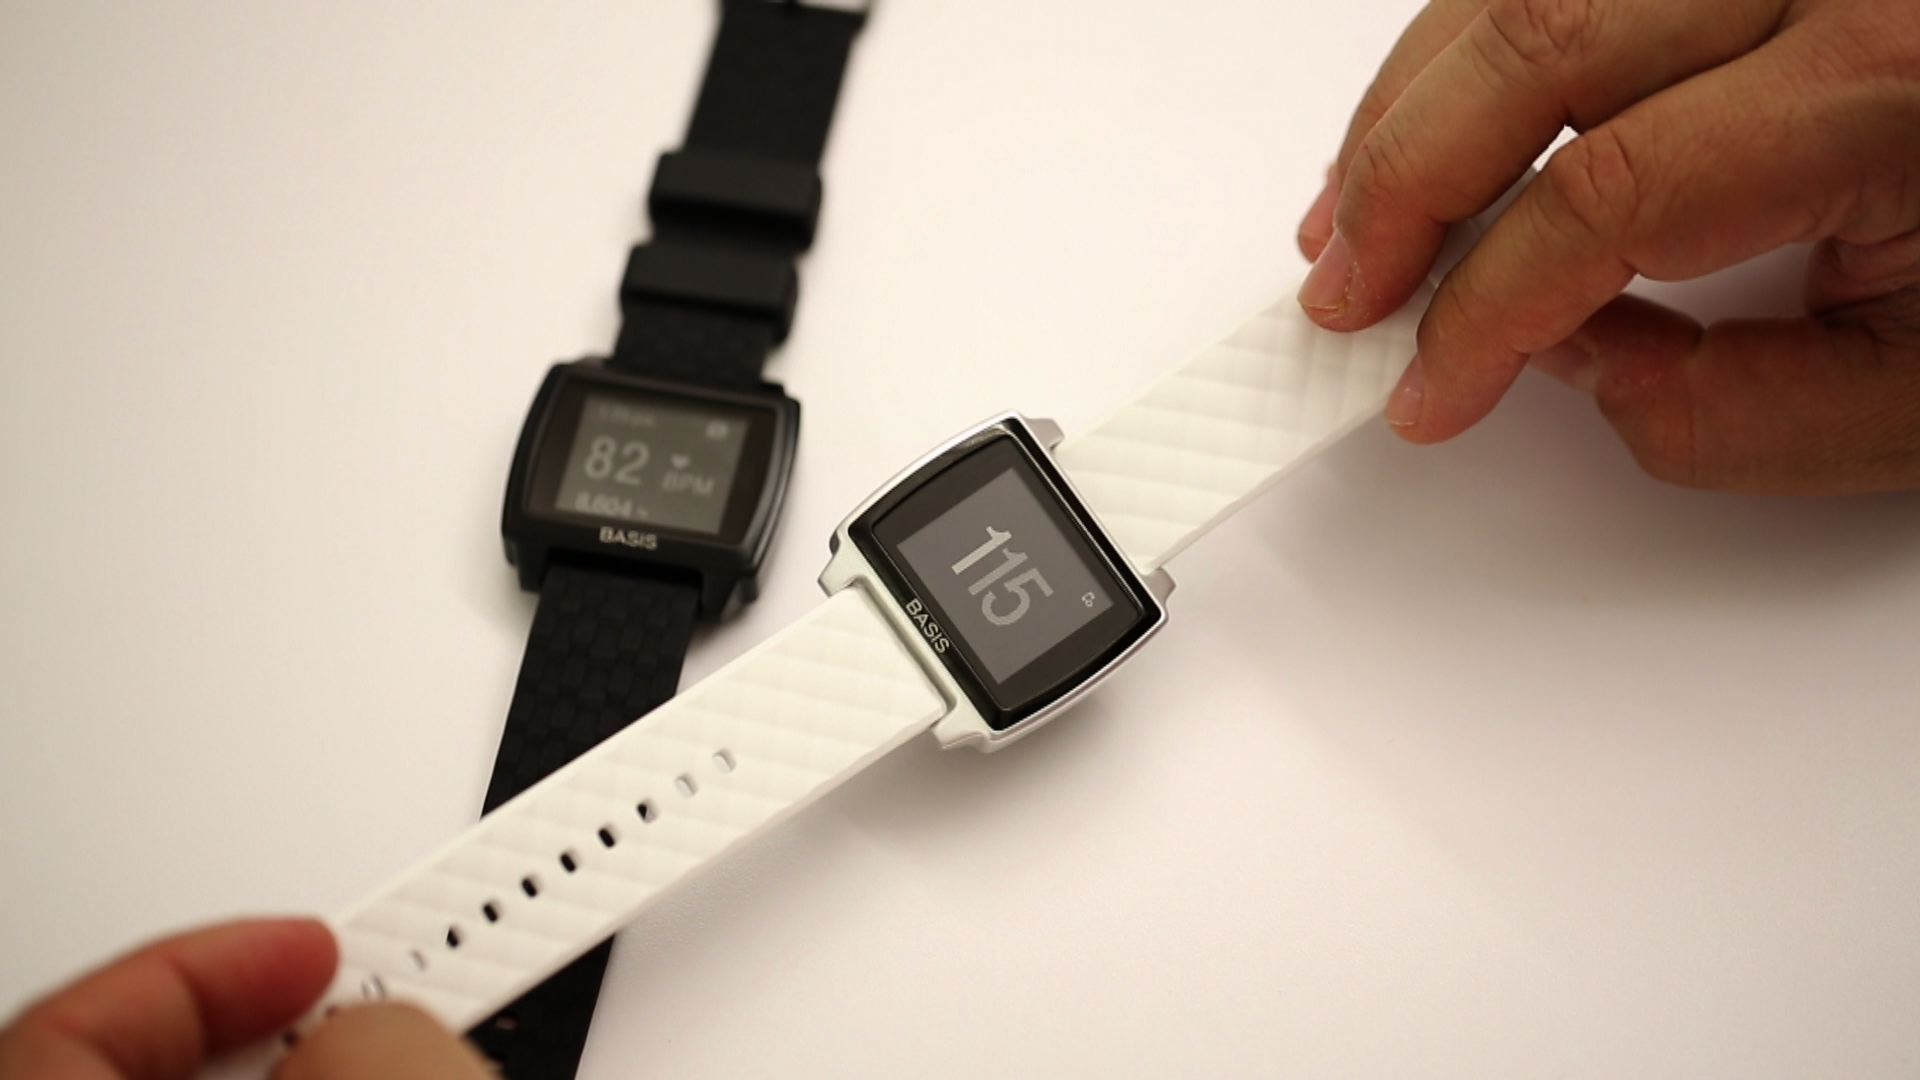 Video: Basis Peak aims to track your health and heart rate, all the time